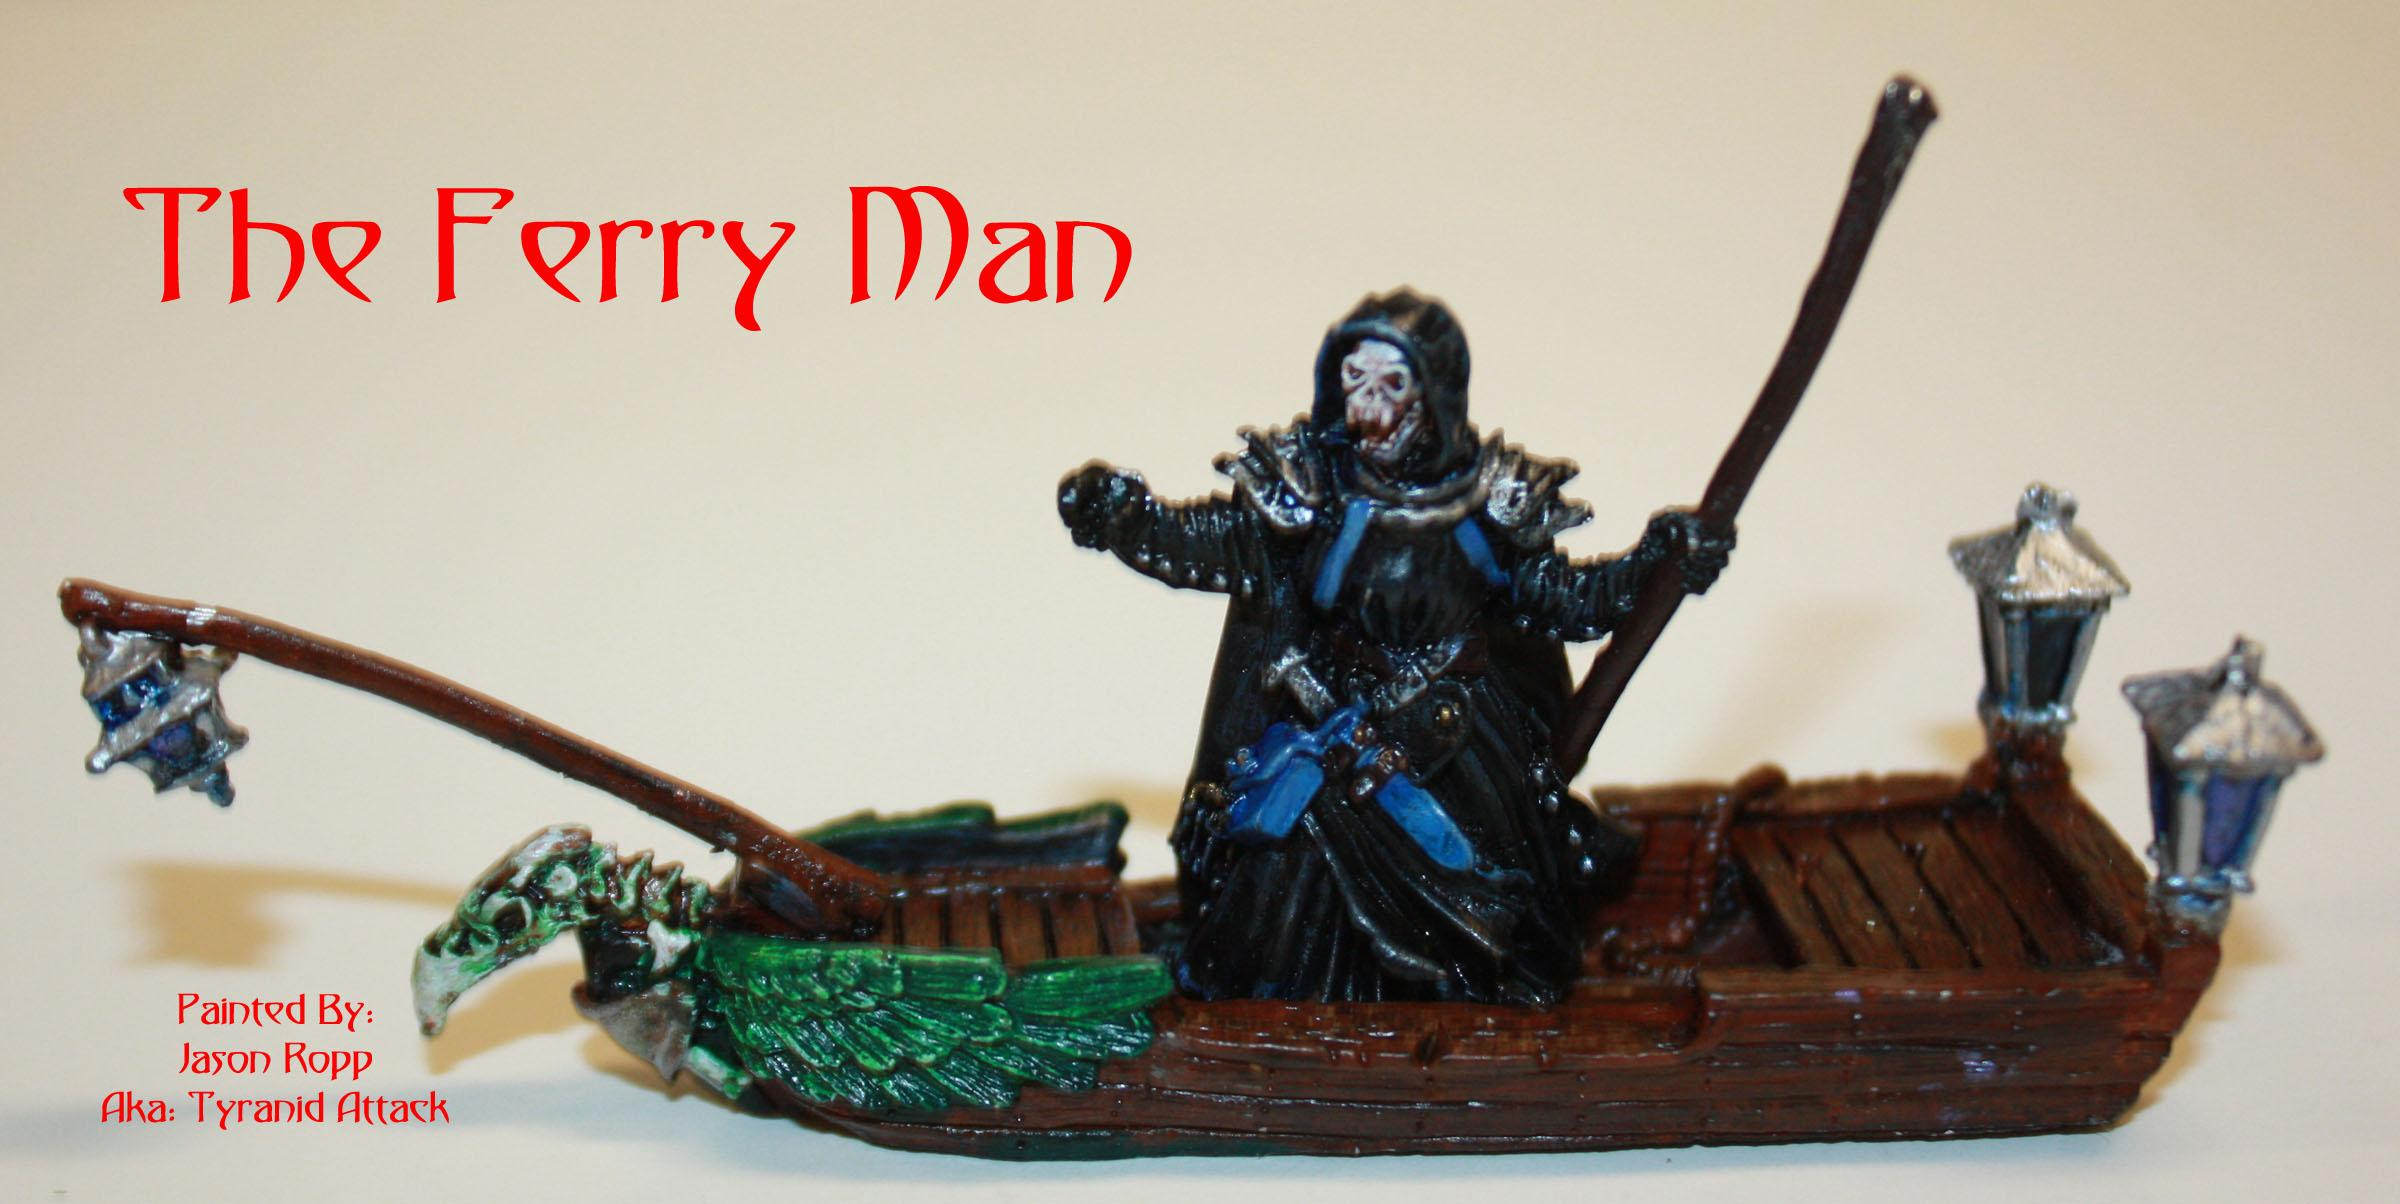 28mm, Boat, Death, Doom, Dragon, Dungeons And Dragons, Fairy Tale, Grim Reaper, Quest, Warhammer Fantasy